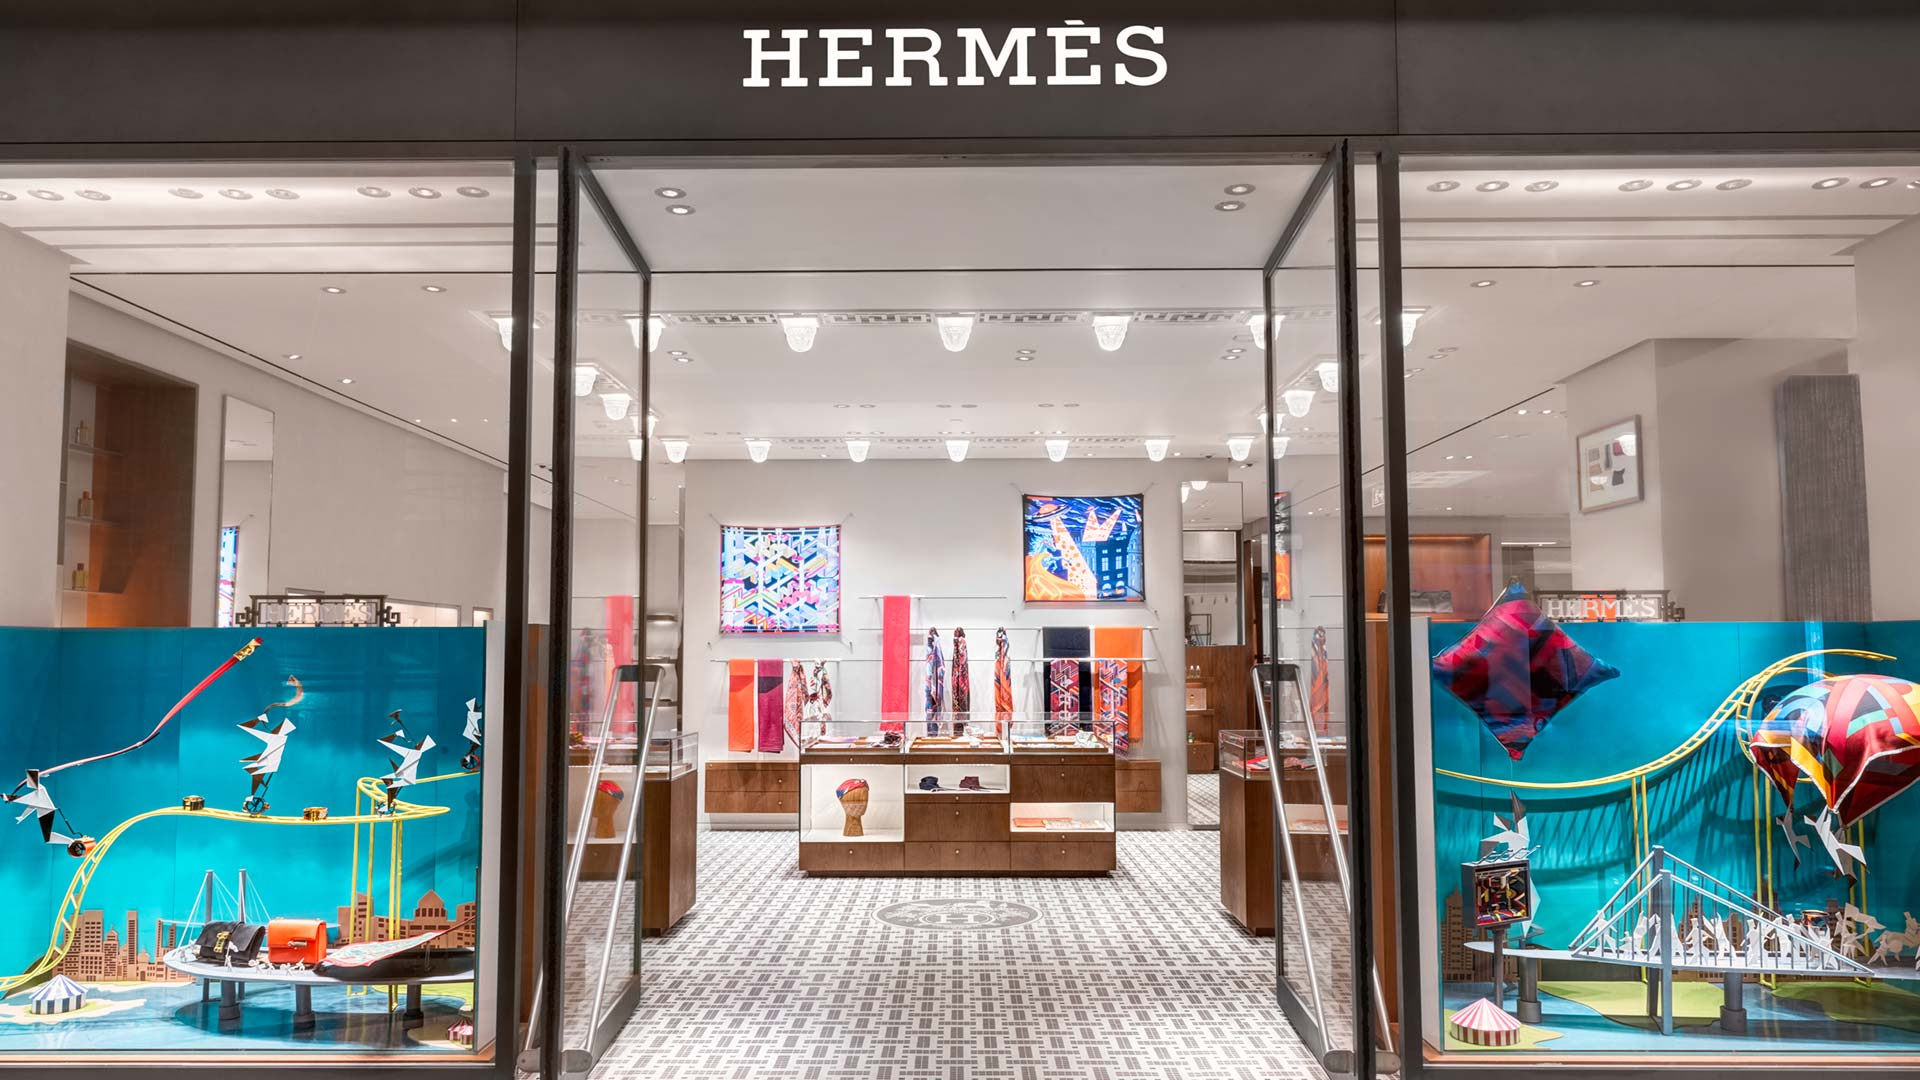 Hermes belongs to which country